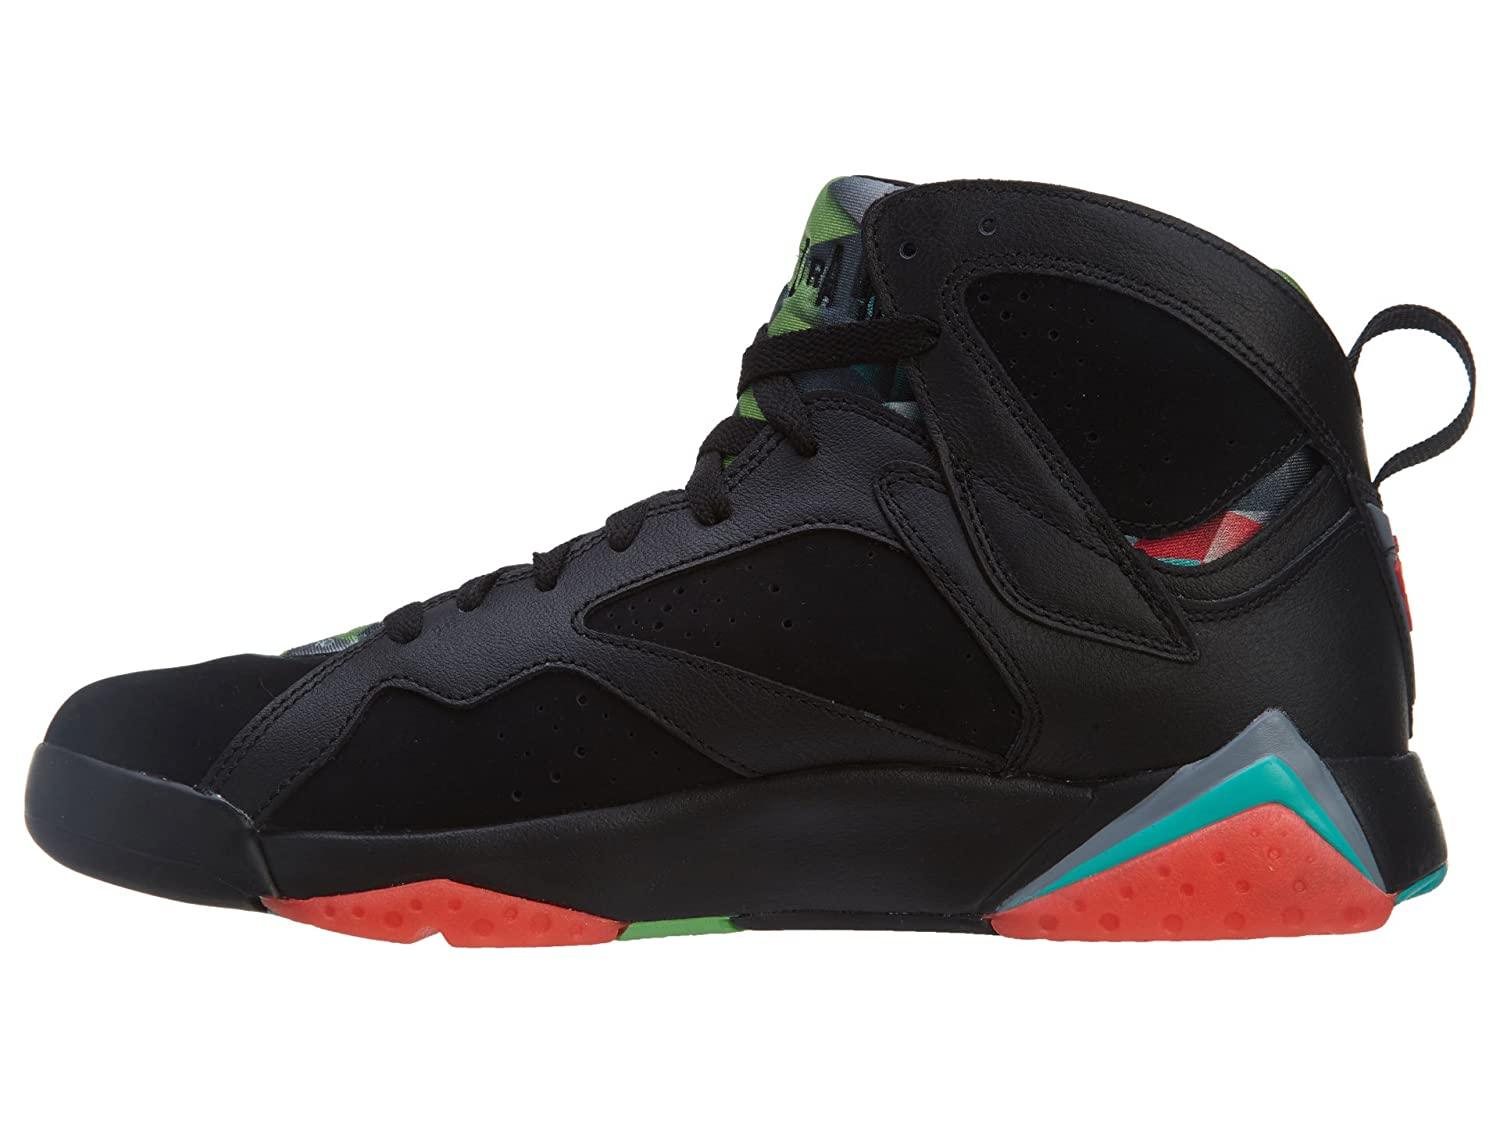 c9952c3e6a4d5 Nike Mens Air Jordan 7 Retro 30th Marvin Martian Black/Infrared 23-Blue  Graphite Suede Size 9. 5 Basketball Shoes: Buy Online at Low Prices in  India ...